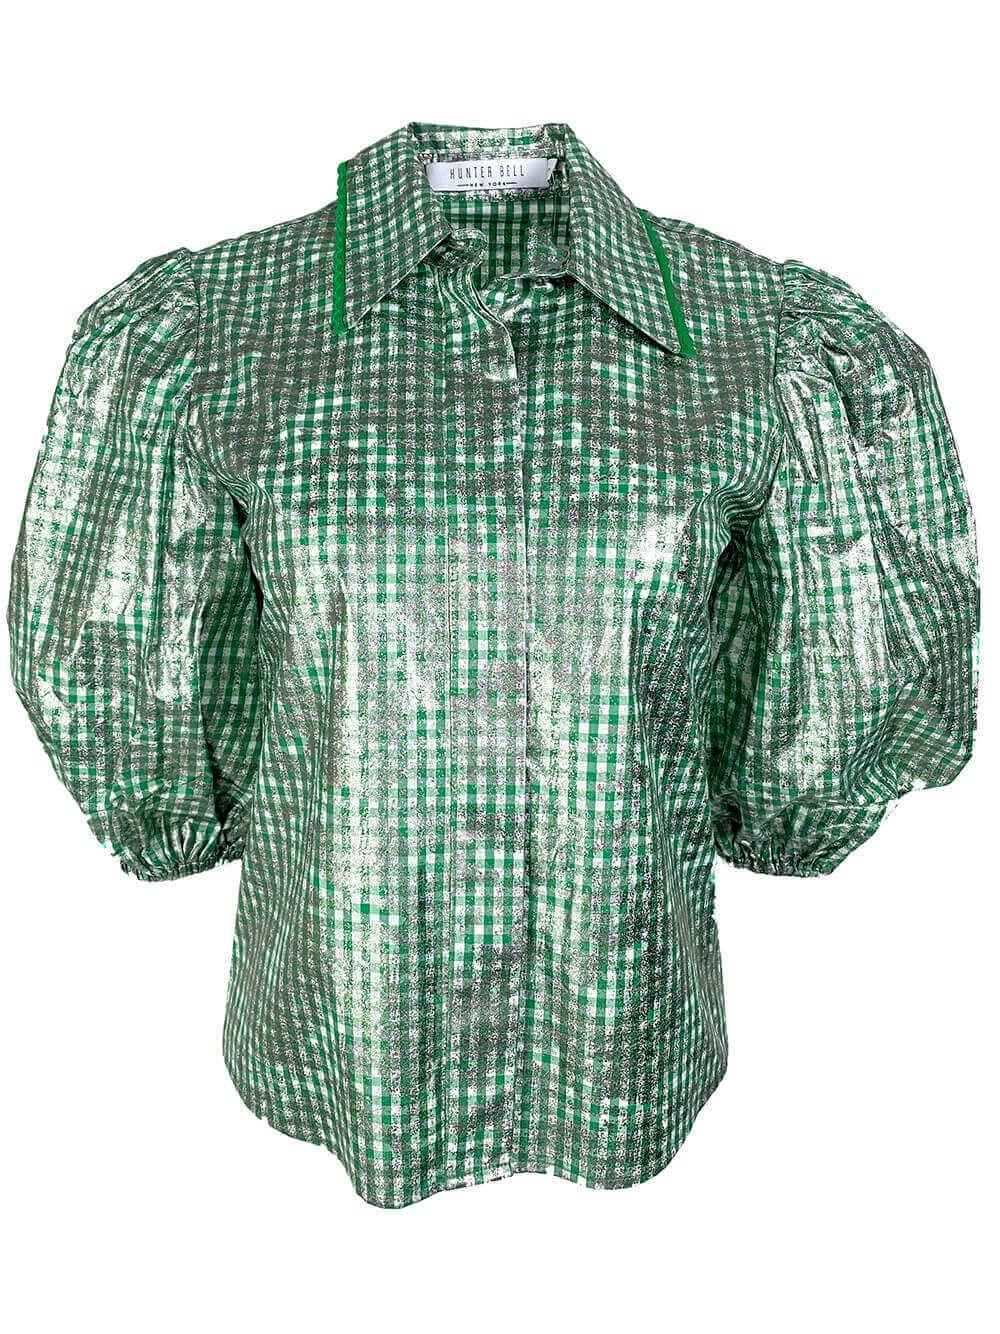 Dawson Metallic Short Sleeve Gingham Top Item # 20SPT1